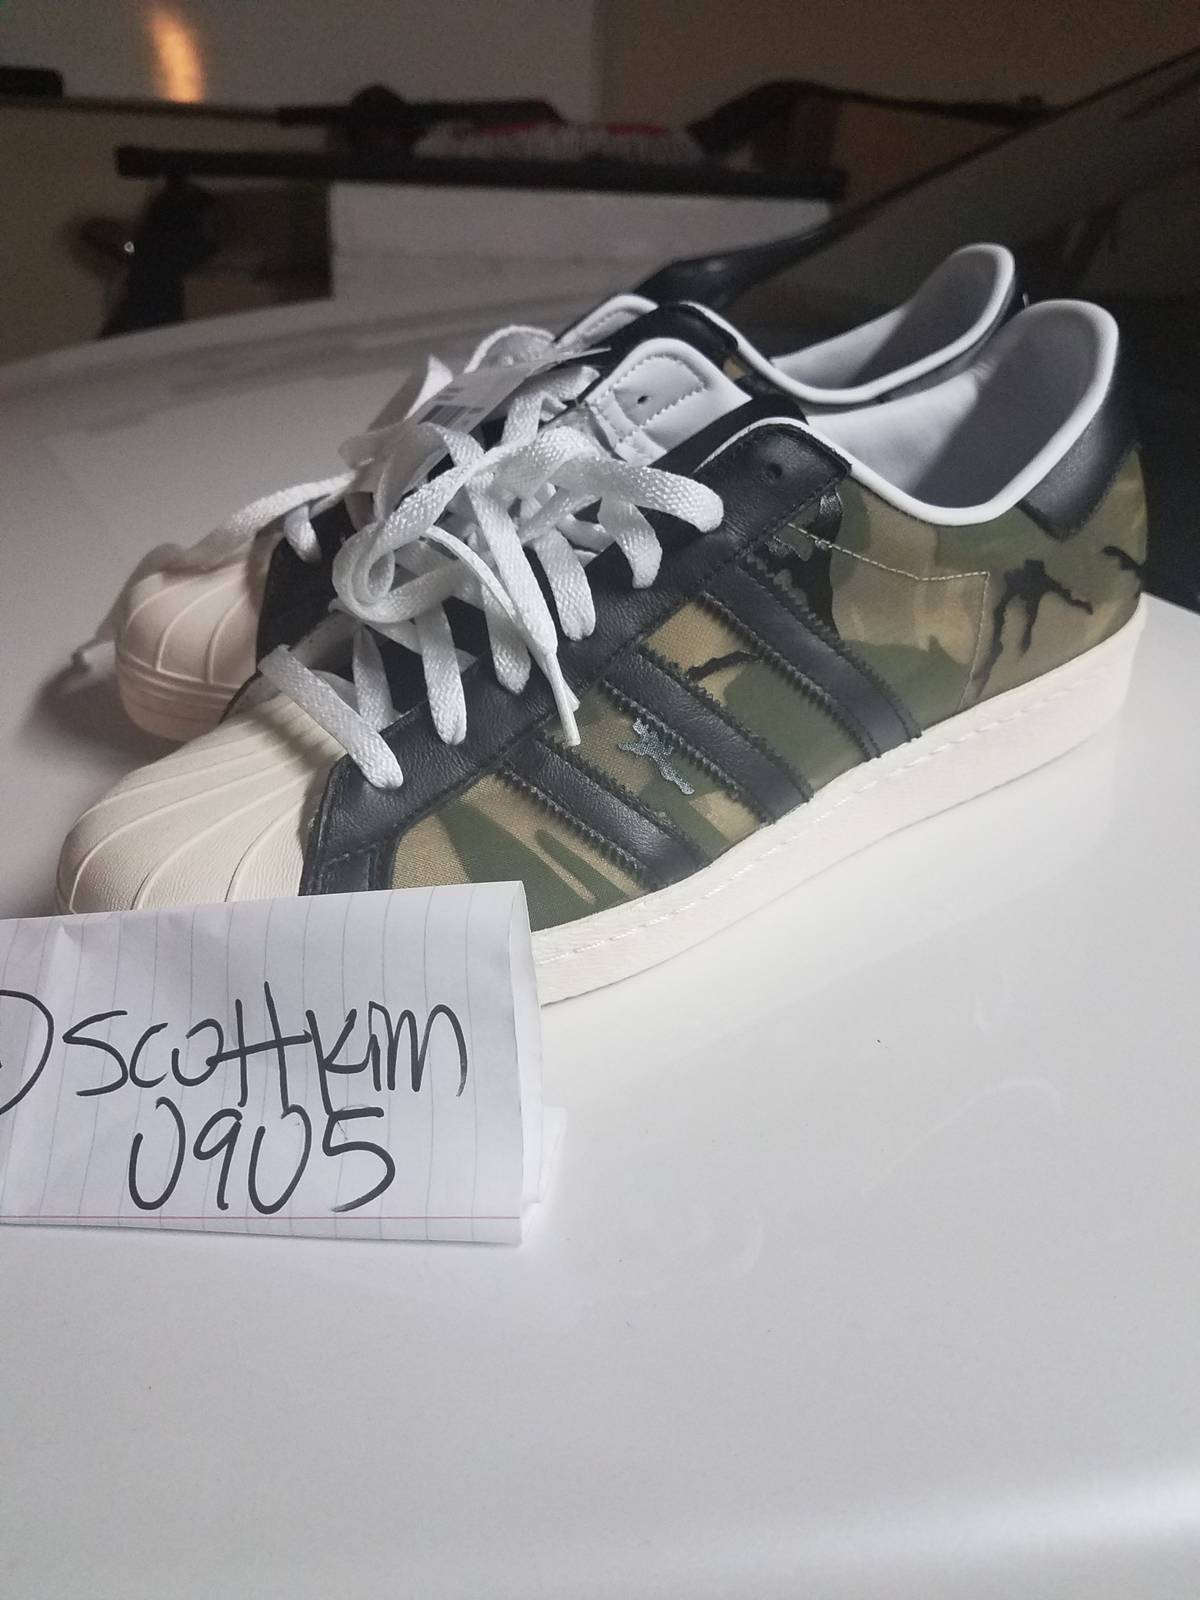 separation shoes b3ff0 b7390 Adidas ADIDAS X KZK X CLOT SUPERSTAR 80S 84-LAB Size 12 - Low-Top Sneakers  for Sale - Grailed